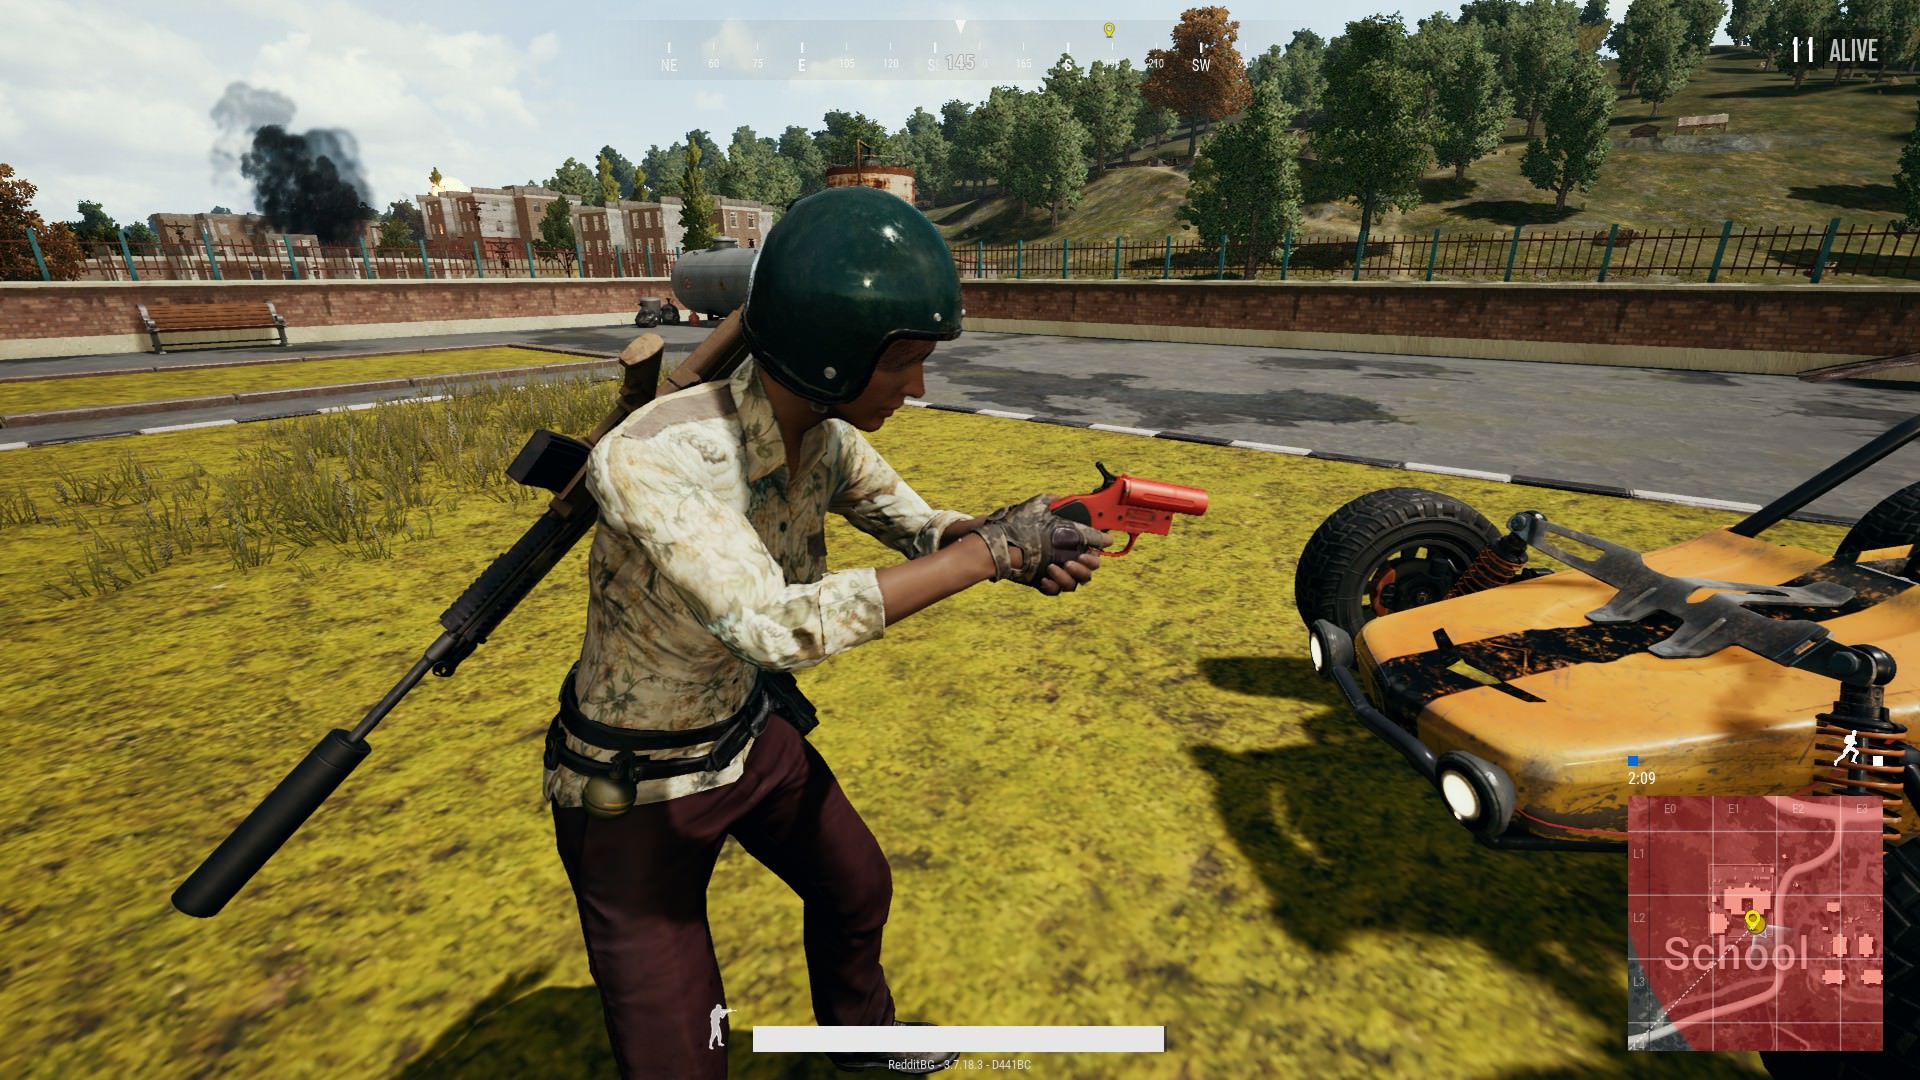 Pubg S Latest Update Stealth Added A Flare Gun Could This Be Our